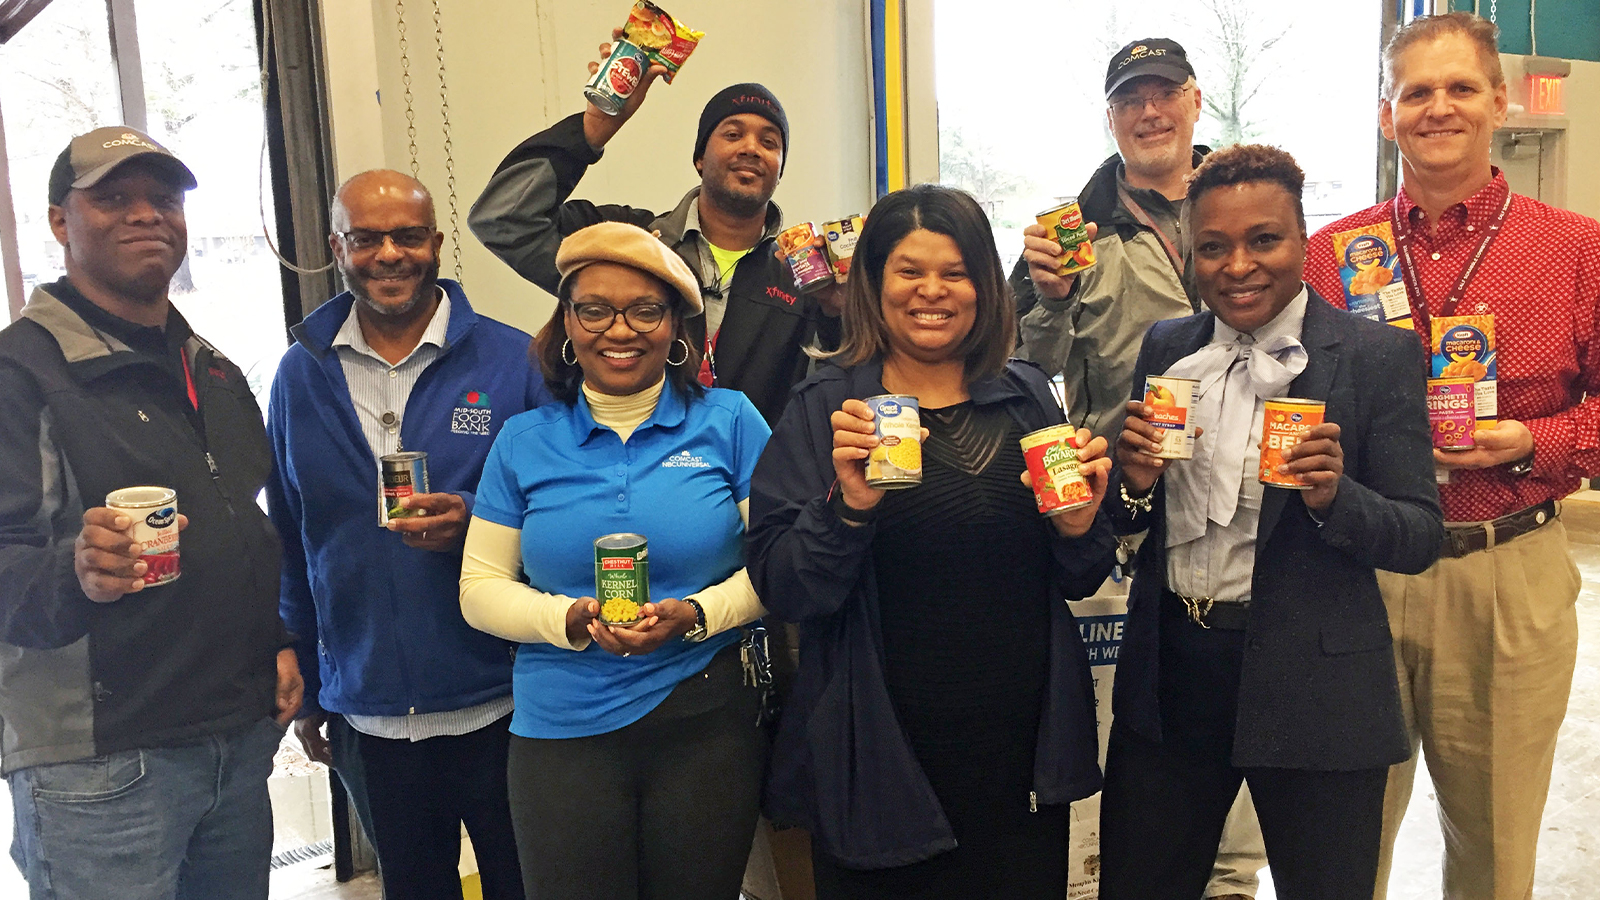 Comcast employees donating their time at a Food Drive